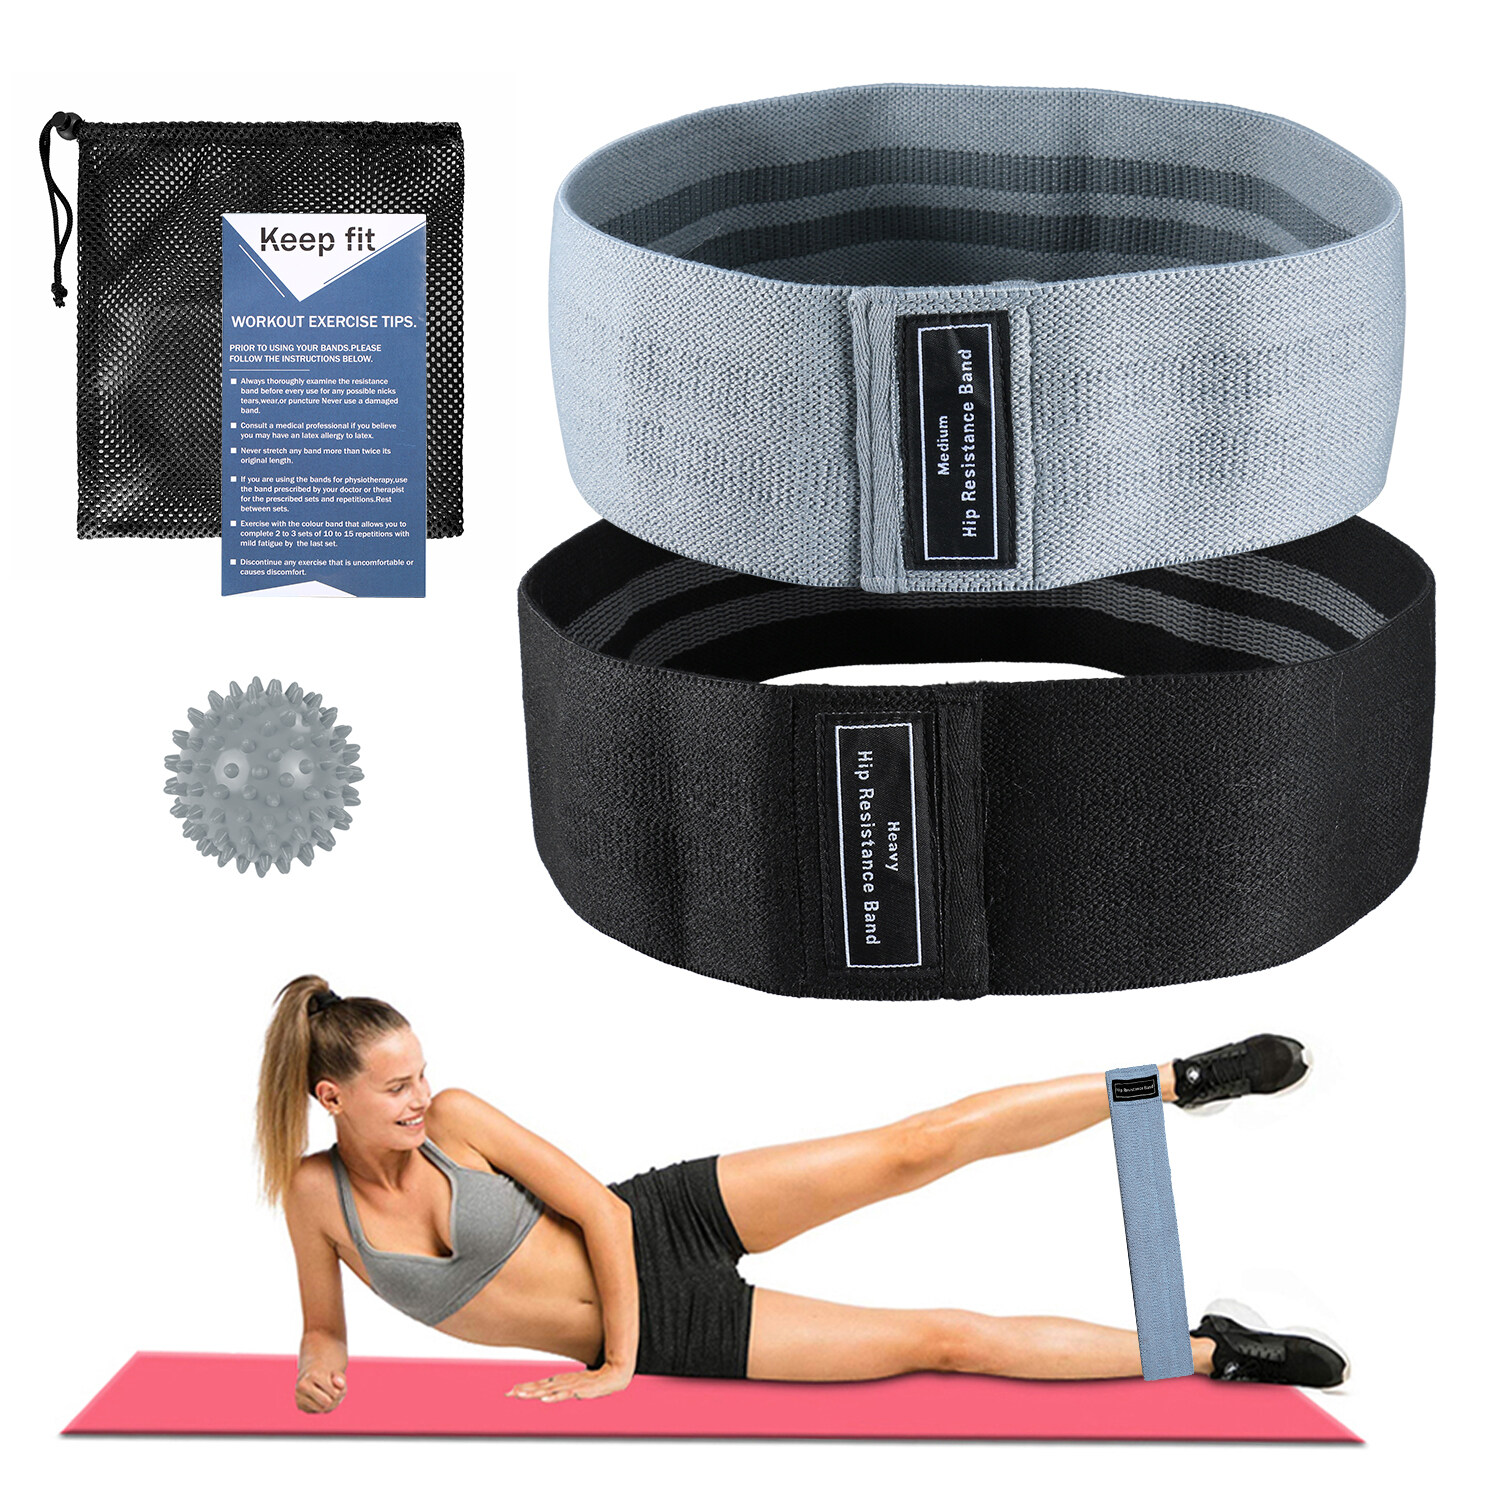 2pcs Booty Bands Fabric Resistance Glute Bands For Legs And Butt Hip Workout Exercise Bands With Spiky Massage Ball And Carry Bag Yoga Pilates Strength Training Lixada.